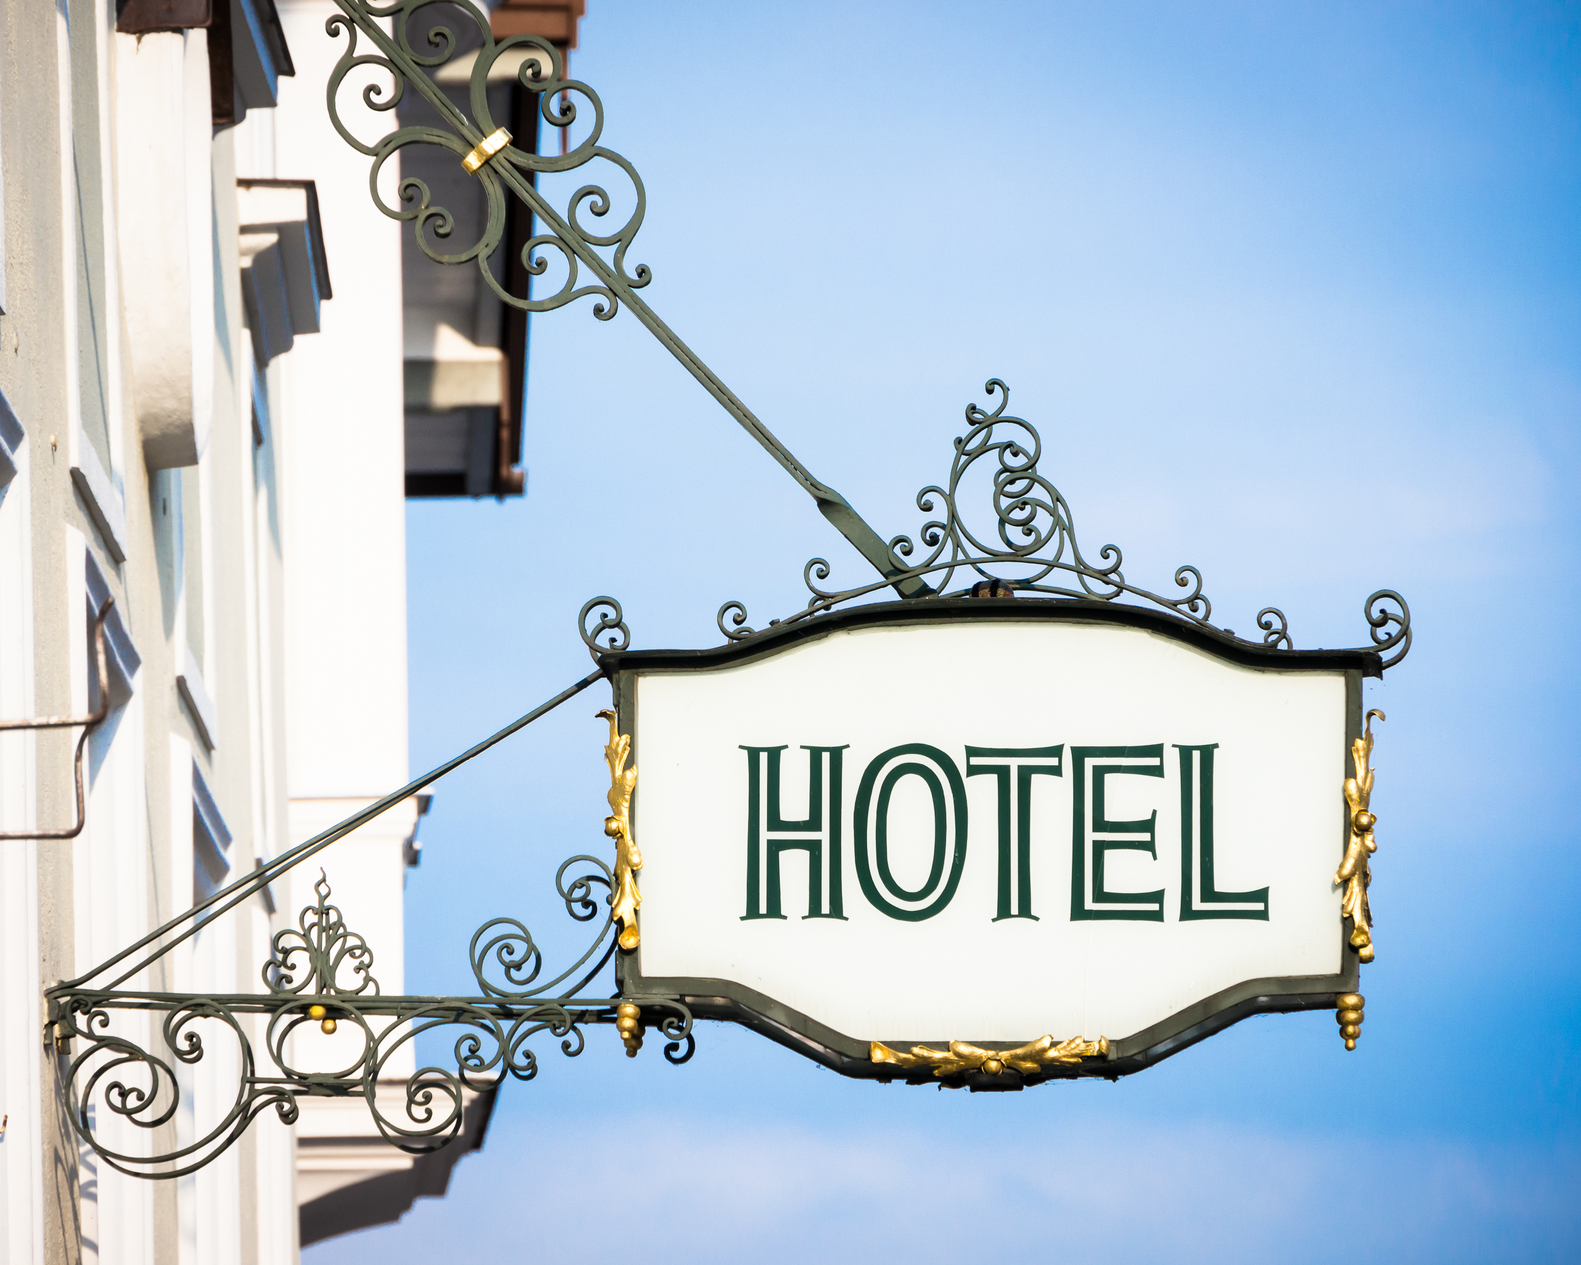 France, Italy, Sweden hotels win right to charge less than Booking.com